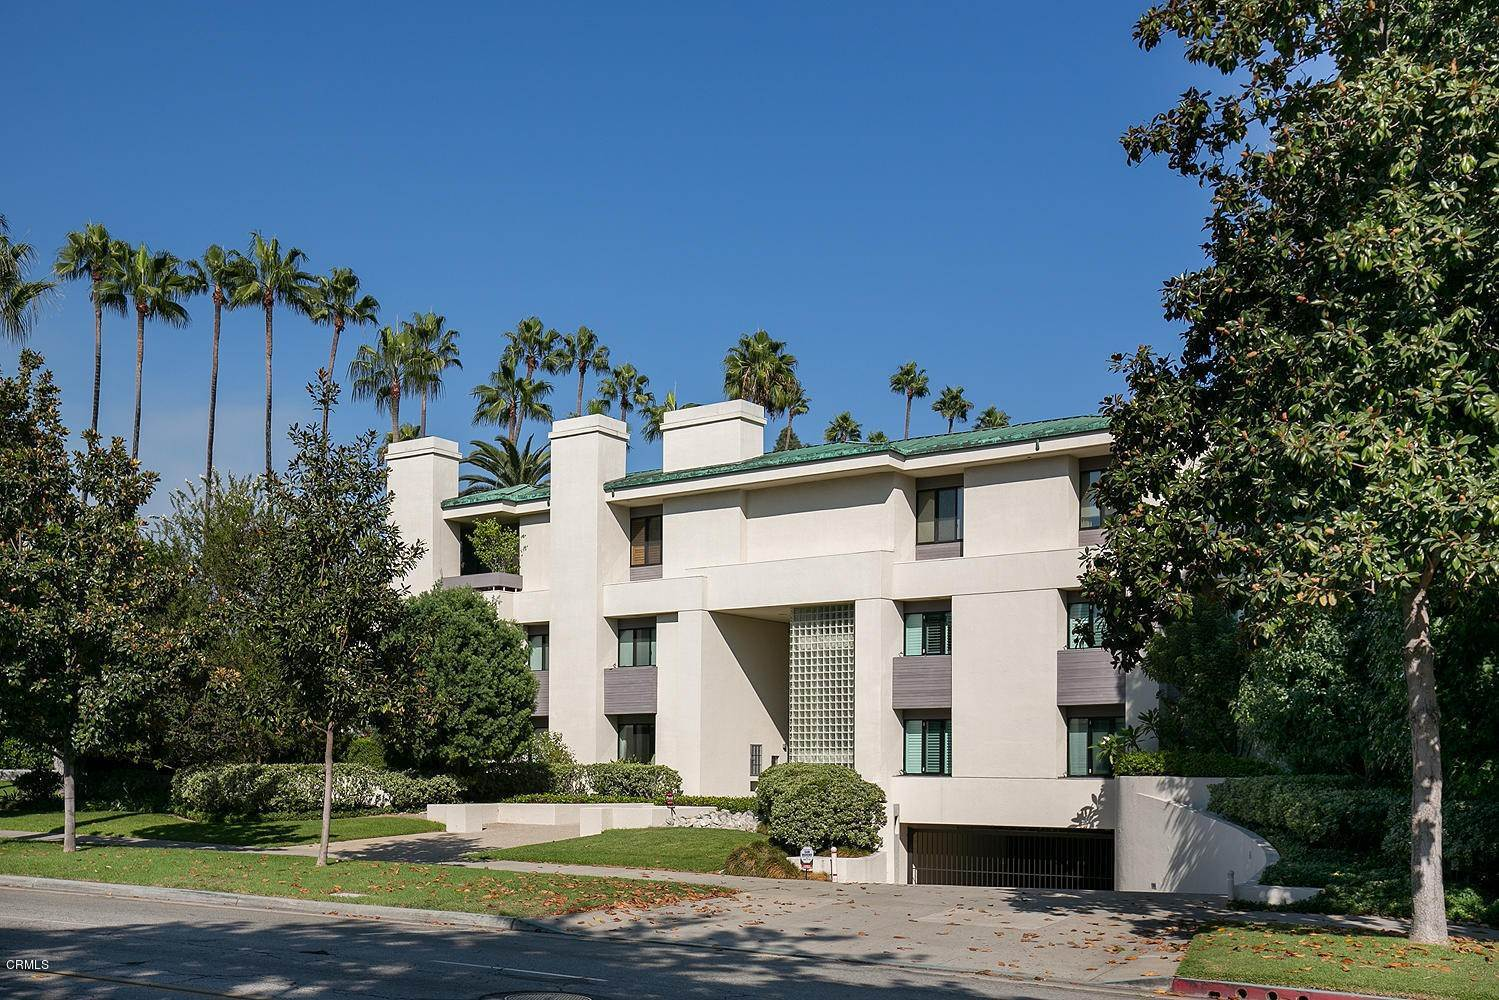 Condominiums at 300 South Orange Grove Boulevard #4 300 South Orange Grove Boulevard Pasadena, California 91105 United States